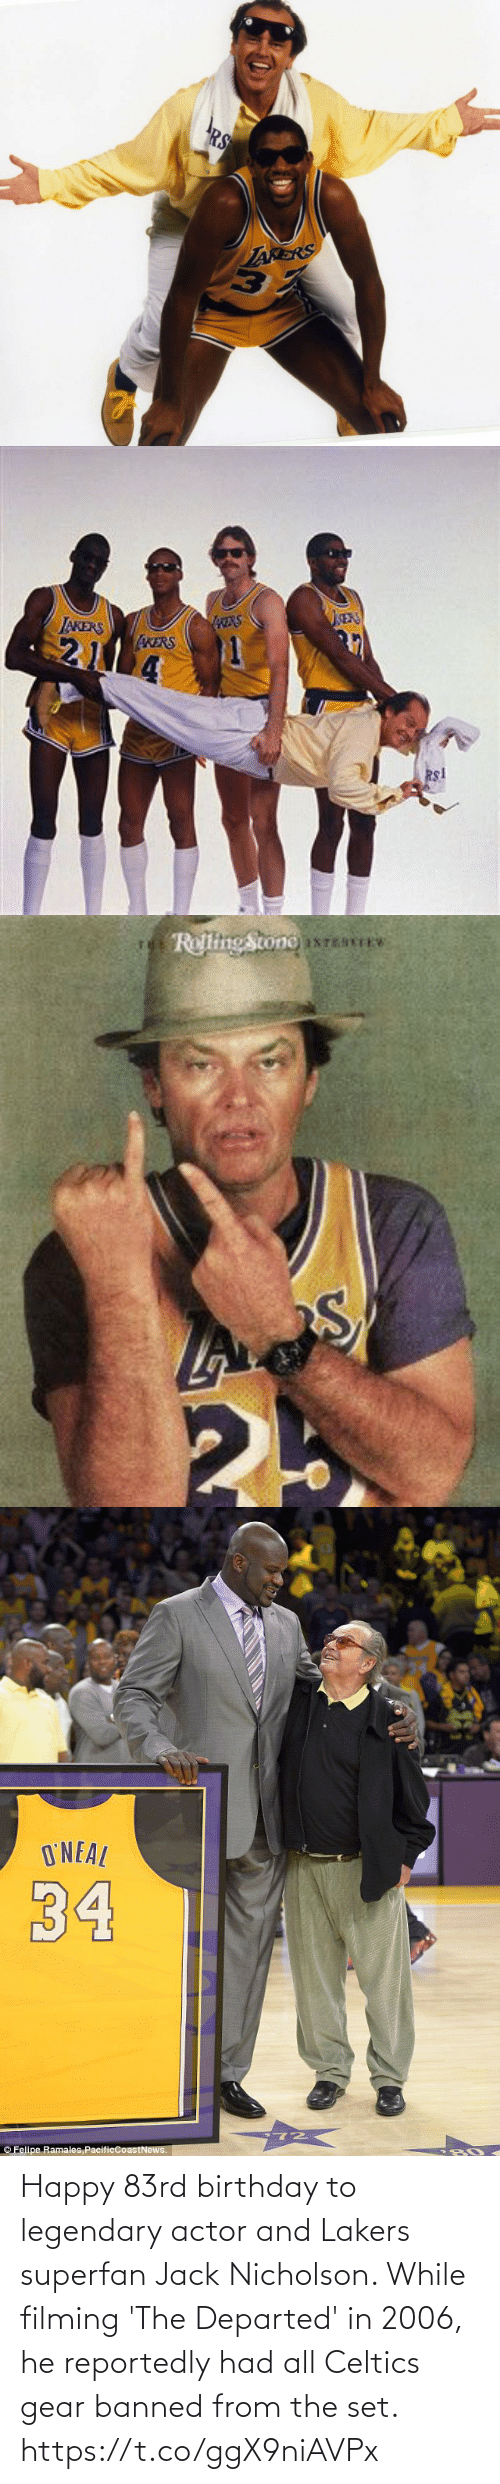 legendary: Happy 83rd birthday to legendary actor and Lakers superfan Jack Nicholson.   While filming 'The Departed' in 2006, he reportedly had all Celtics gear banned from the set. https://t.co/ggX9niAVPx